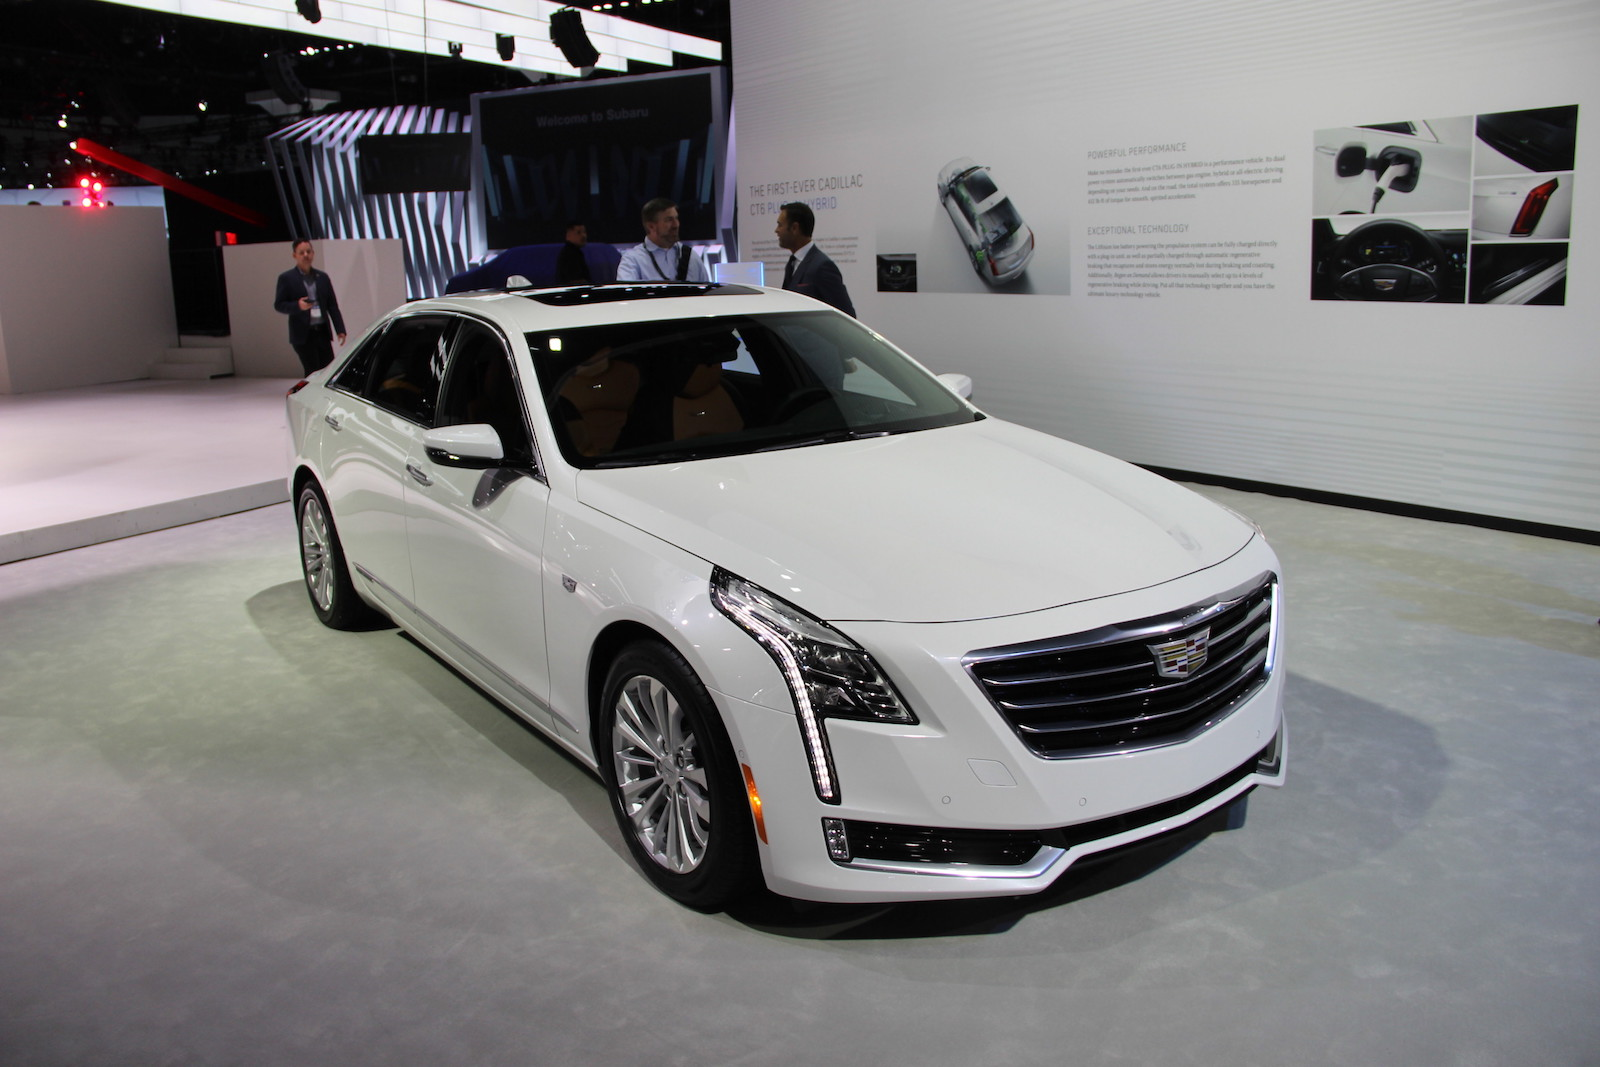 2016 Cadillac Ct6 Is Legit Luxury Autoguide Com News: 2017 Cadillac CT6 Plug-in Hybrid Good For 30 Miles Of